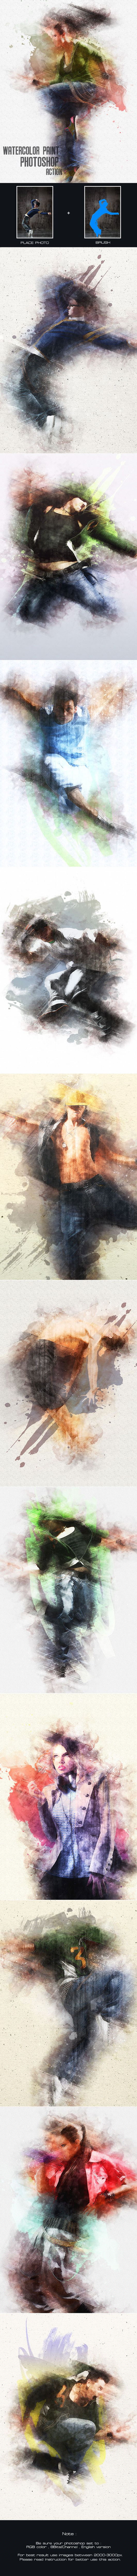 Watercolor Paint - Photoshop Action